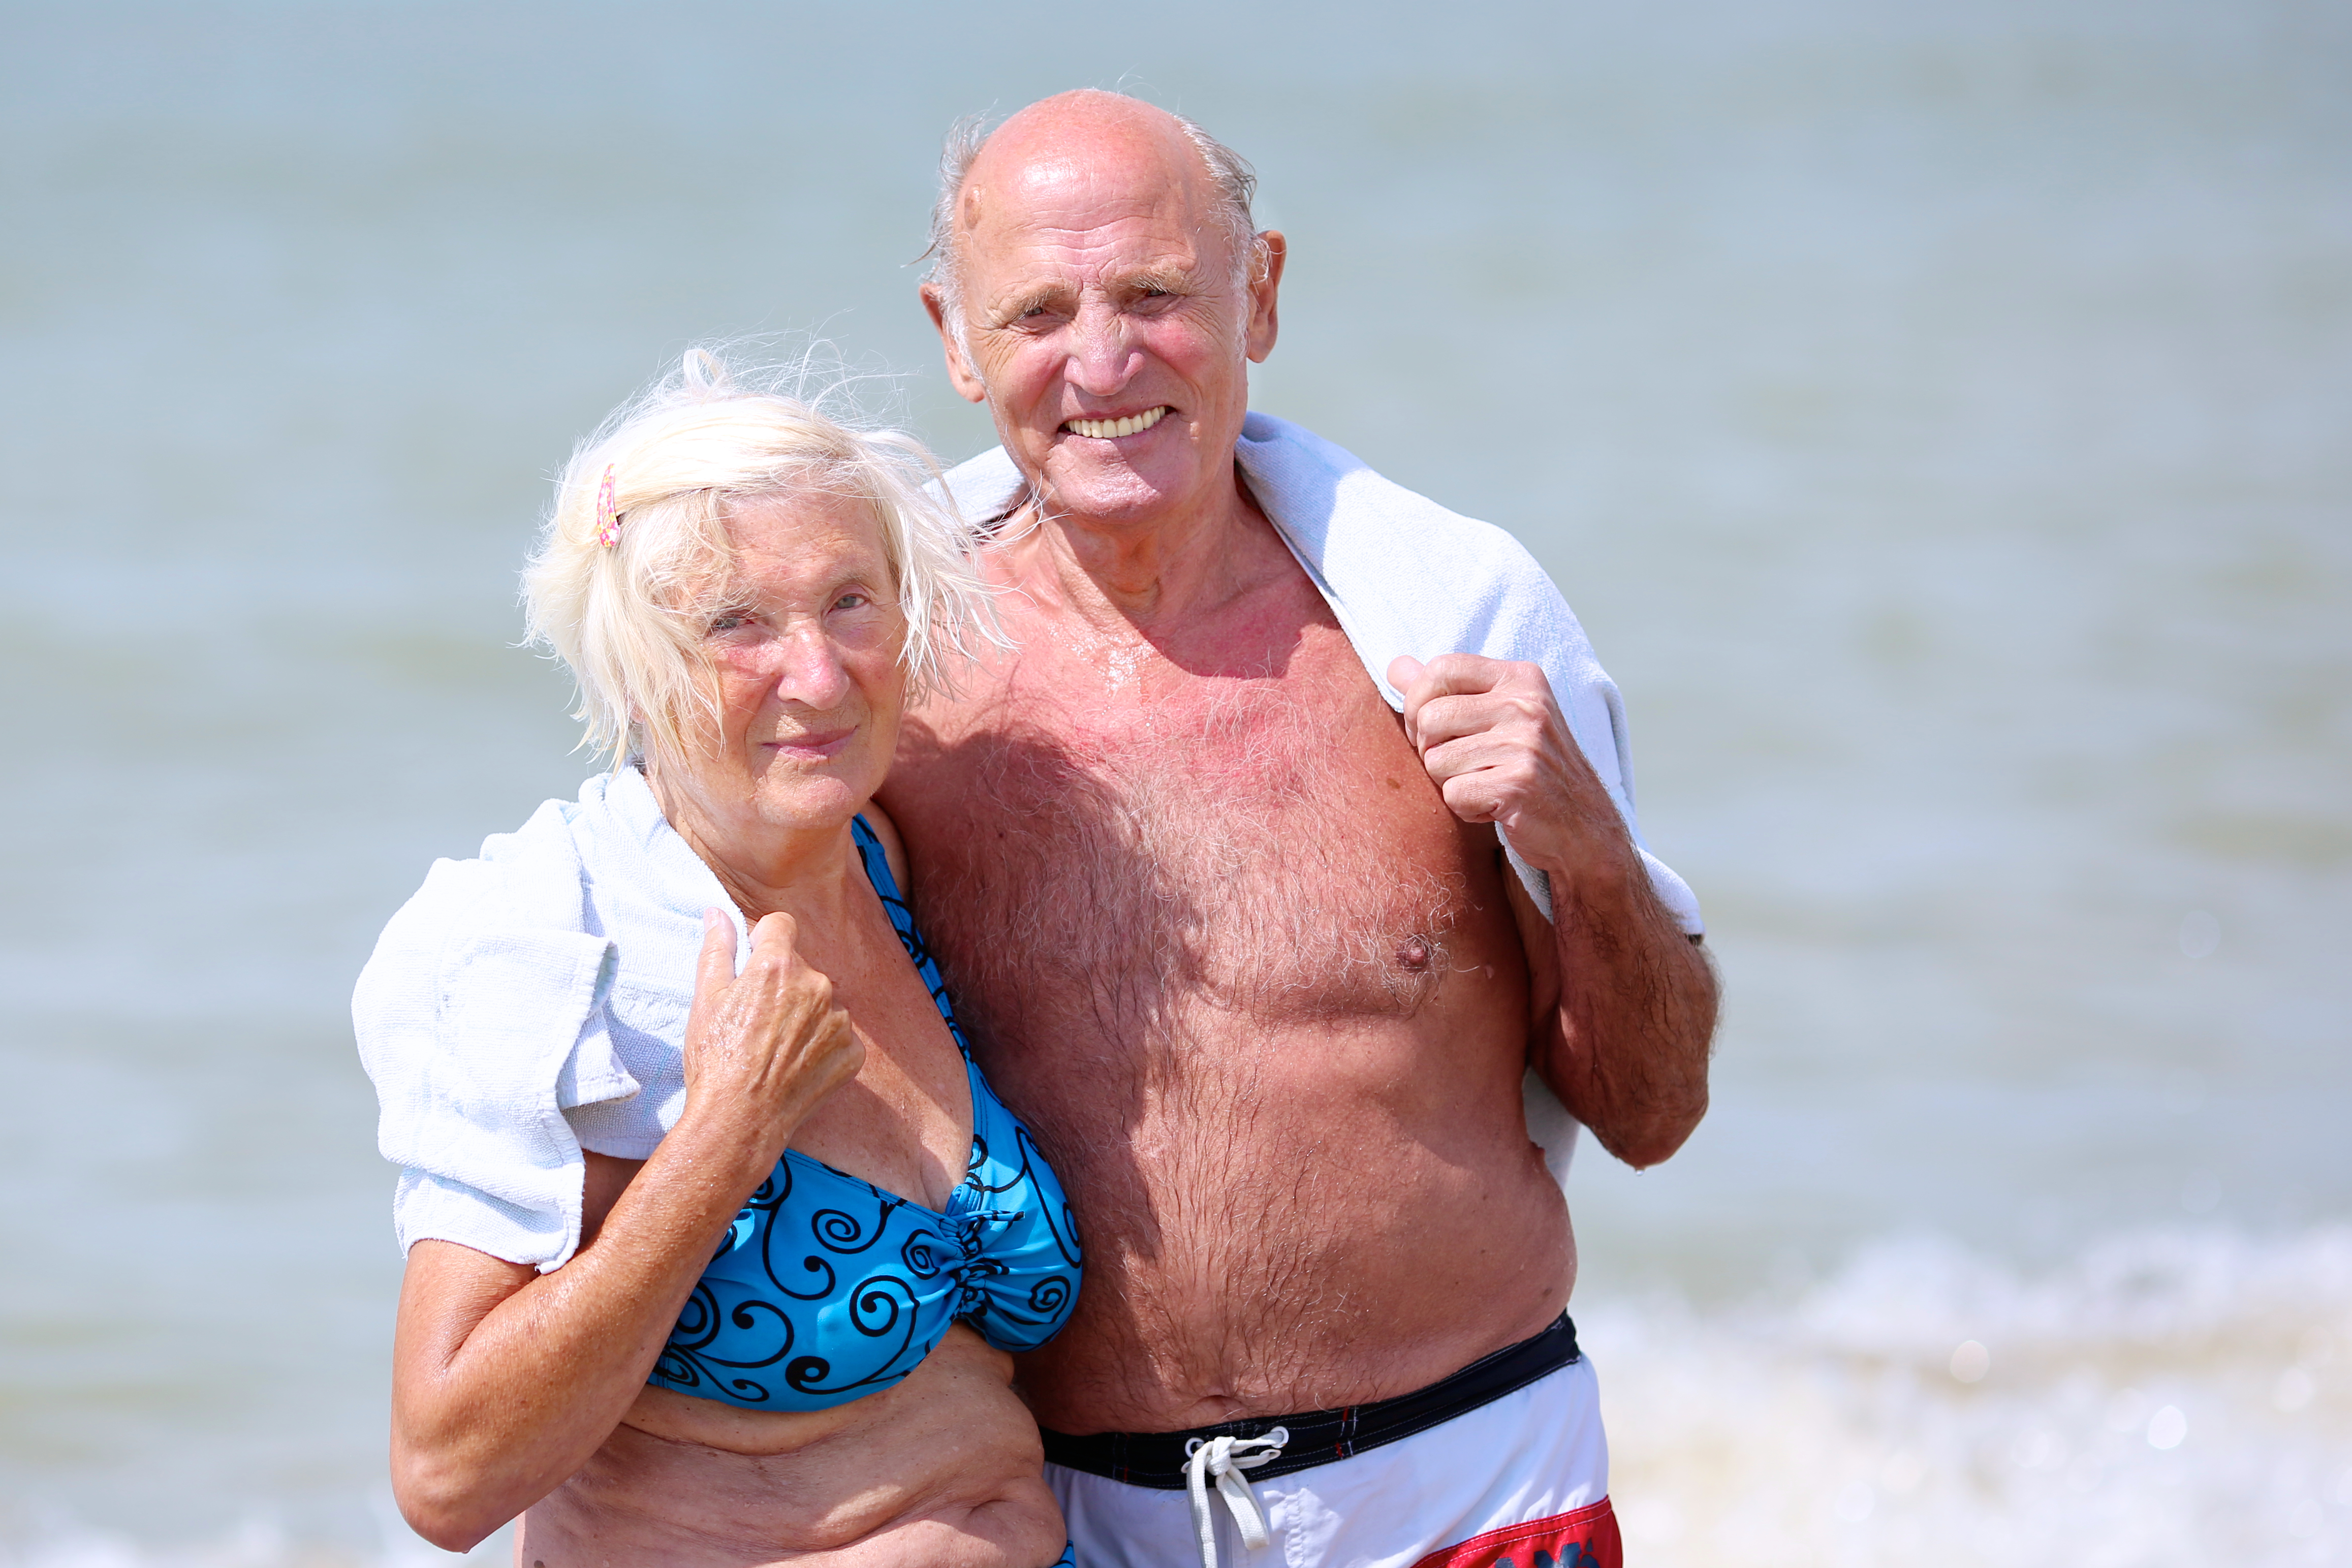 Old Couple Sharing Towel